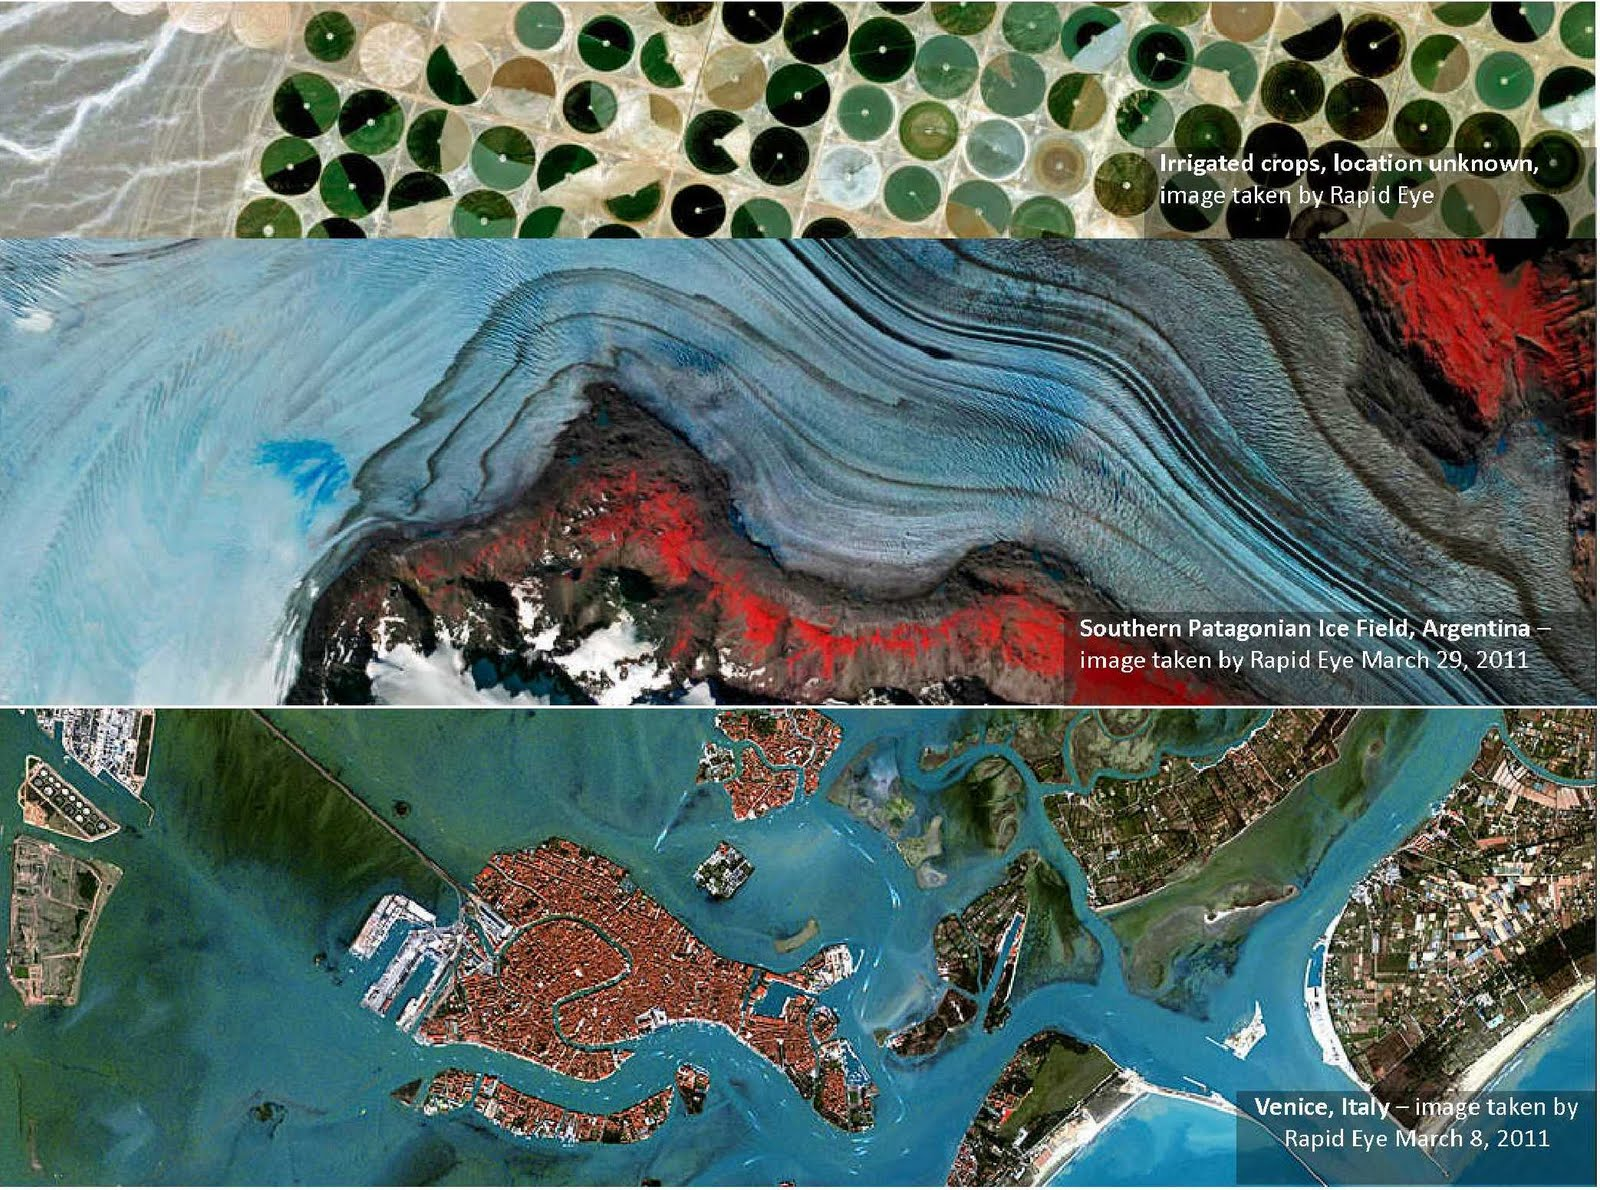 Space Business Blog: Business Case for a CubeSat-based Earth Imaging